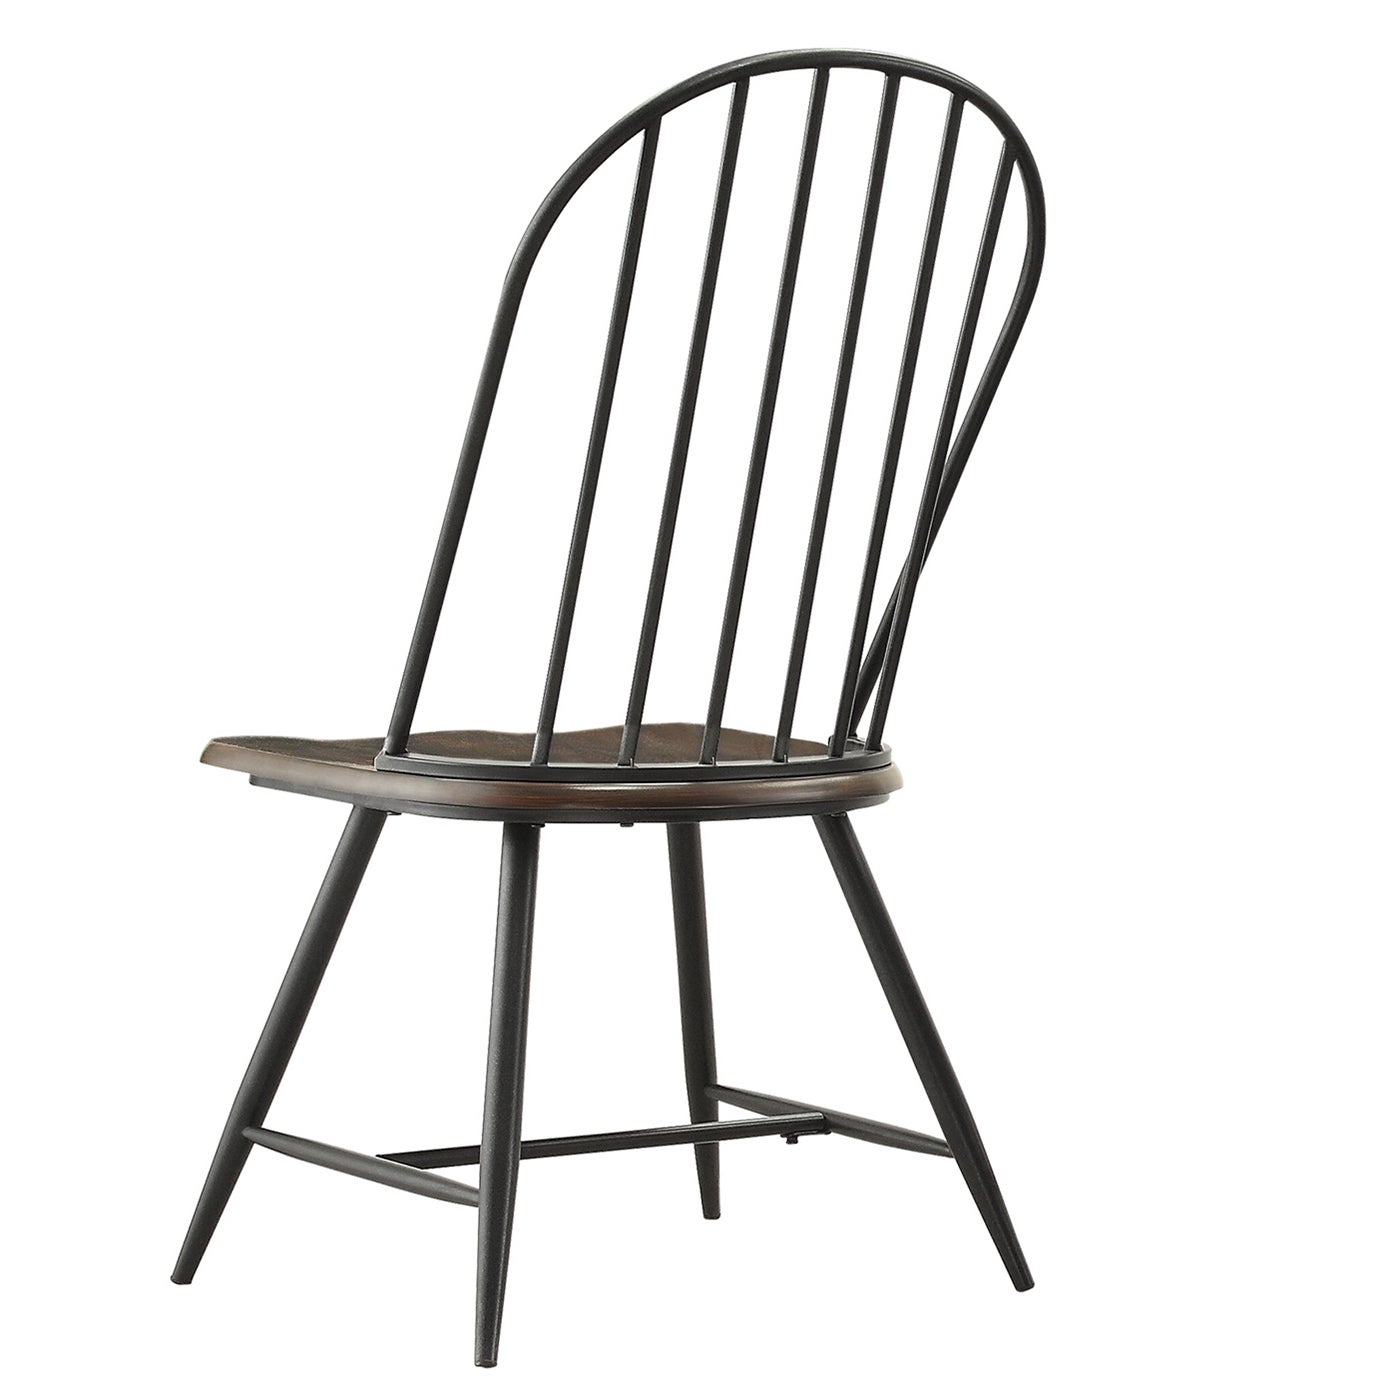 Belita Mid Century Two Tone Modern Spindle Wood Dining Chairs Set Of 4 By Inspire Q Free Shipping Today 9384261